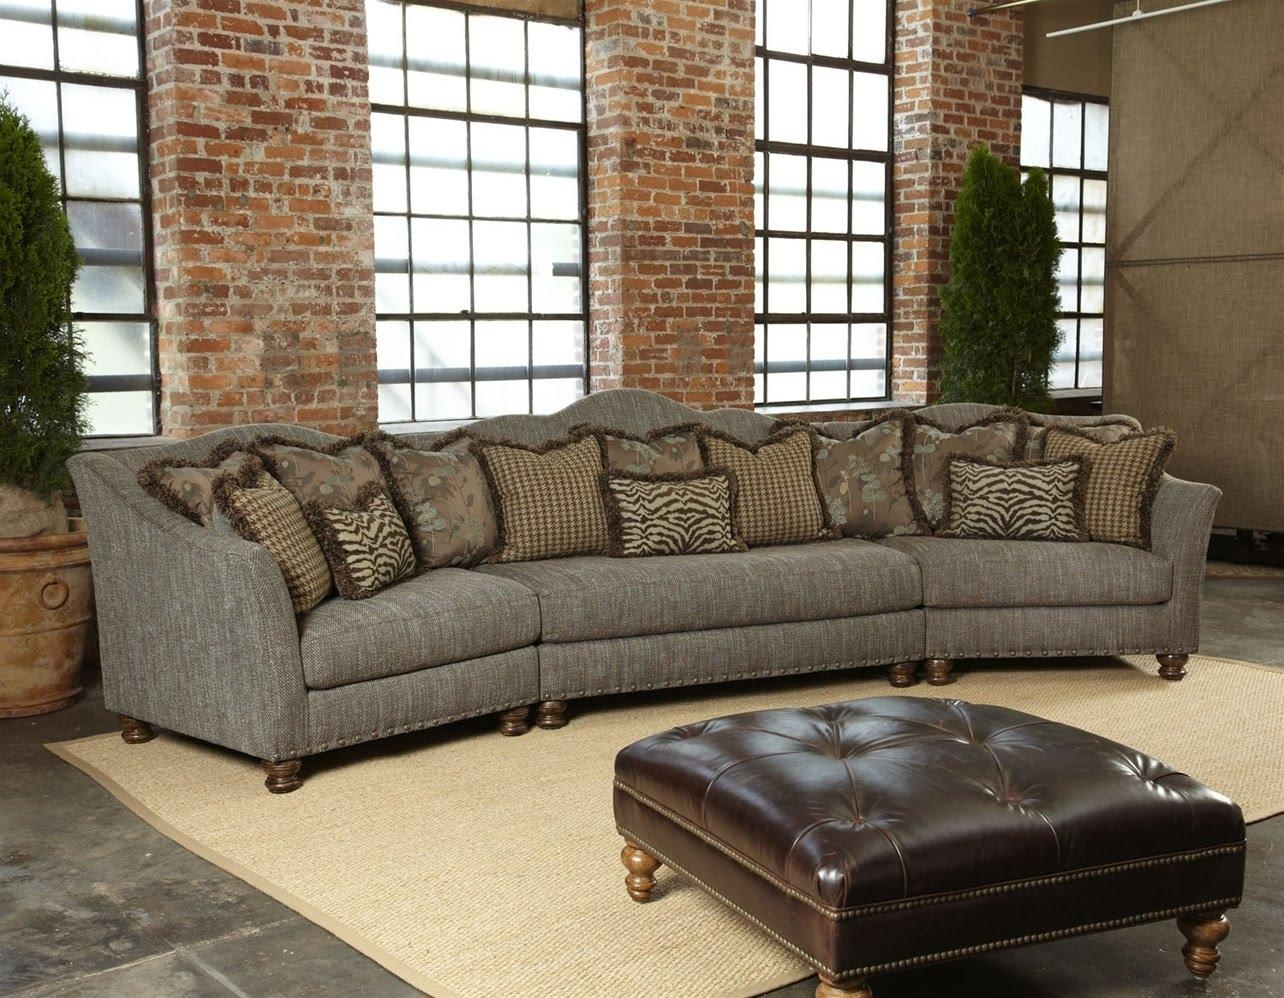 lusso horizon modern grey fabric leather sectional sofa 3 seater bed ikea 15 collection of high end ideas